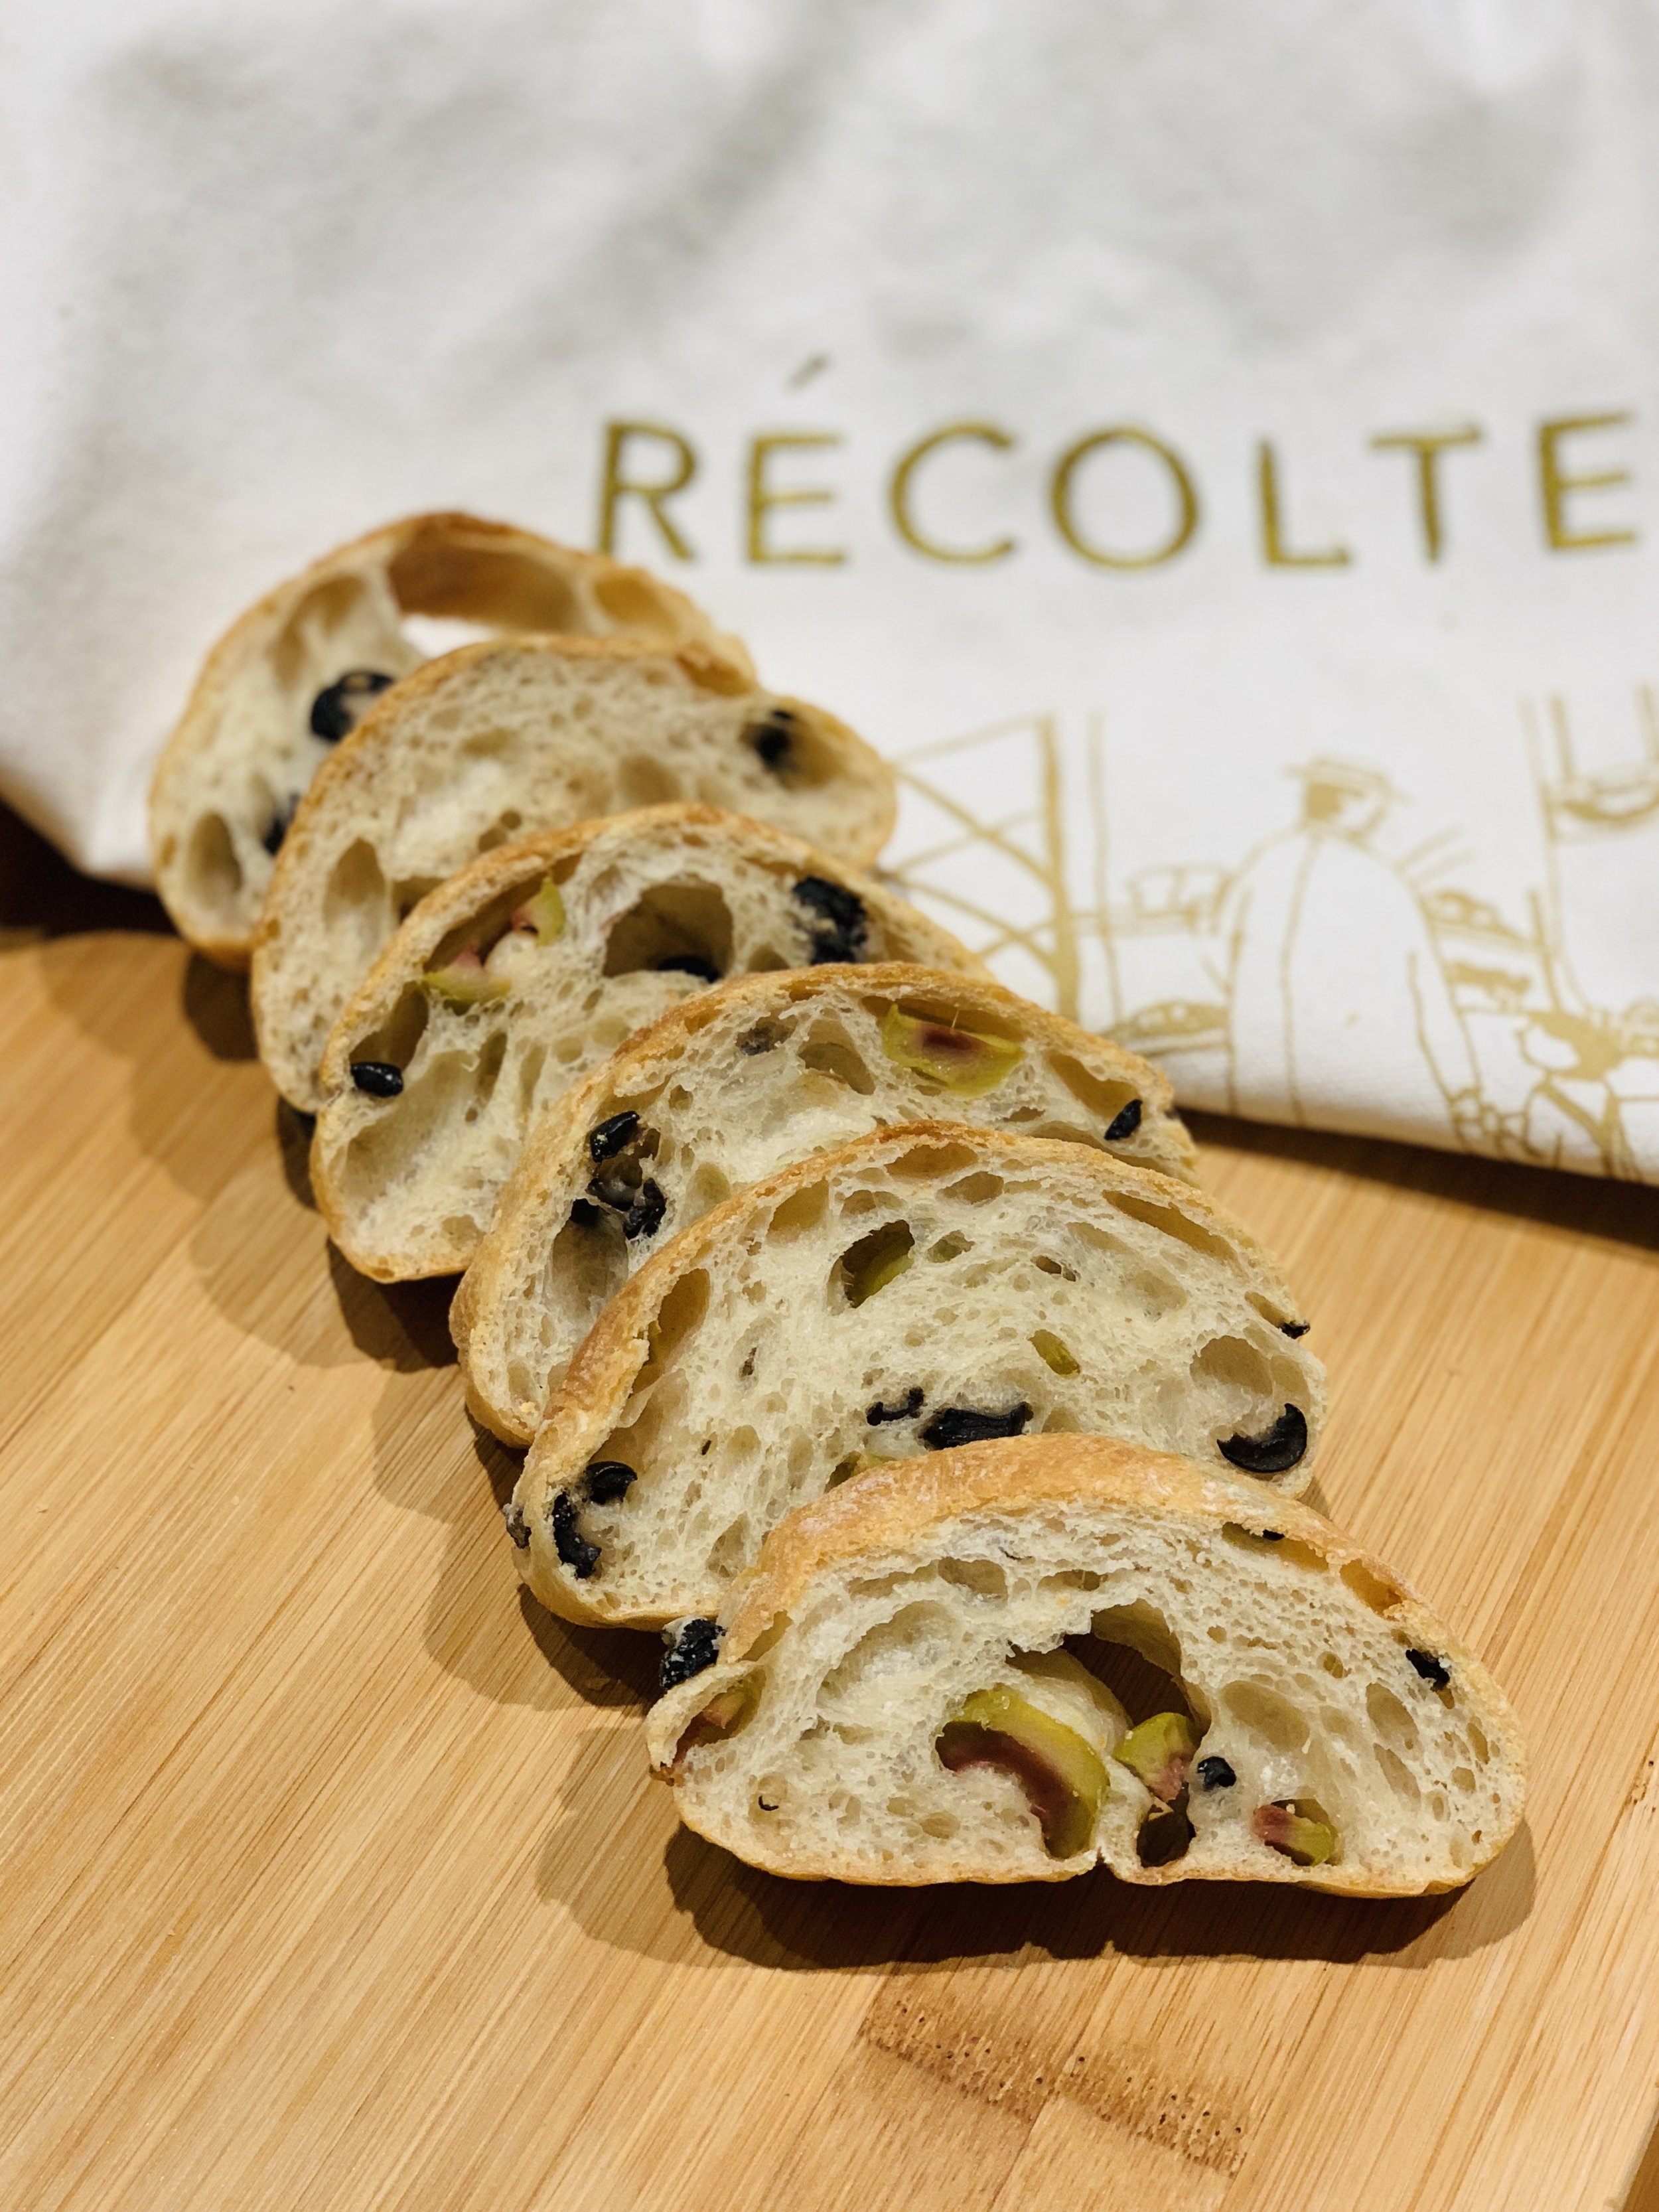 Olive Ciabatta   French Flour, Olive Oil, Black Olive, Green Olive